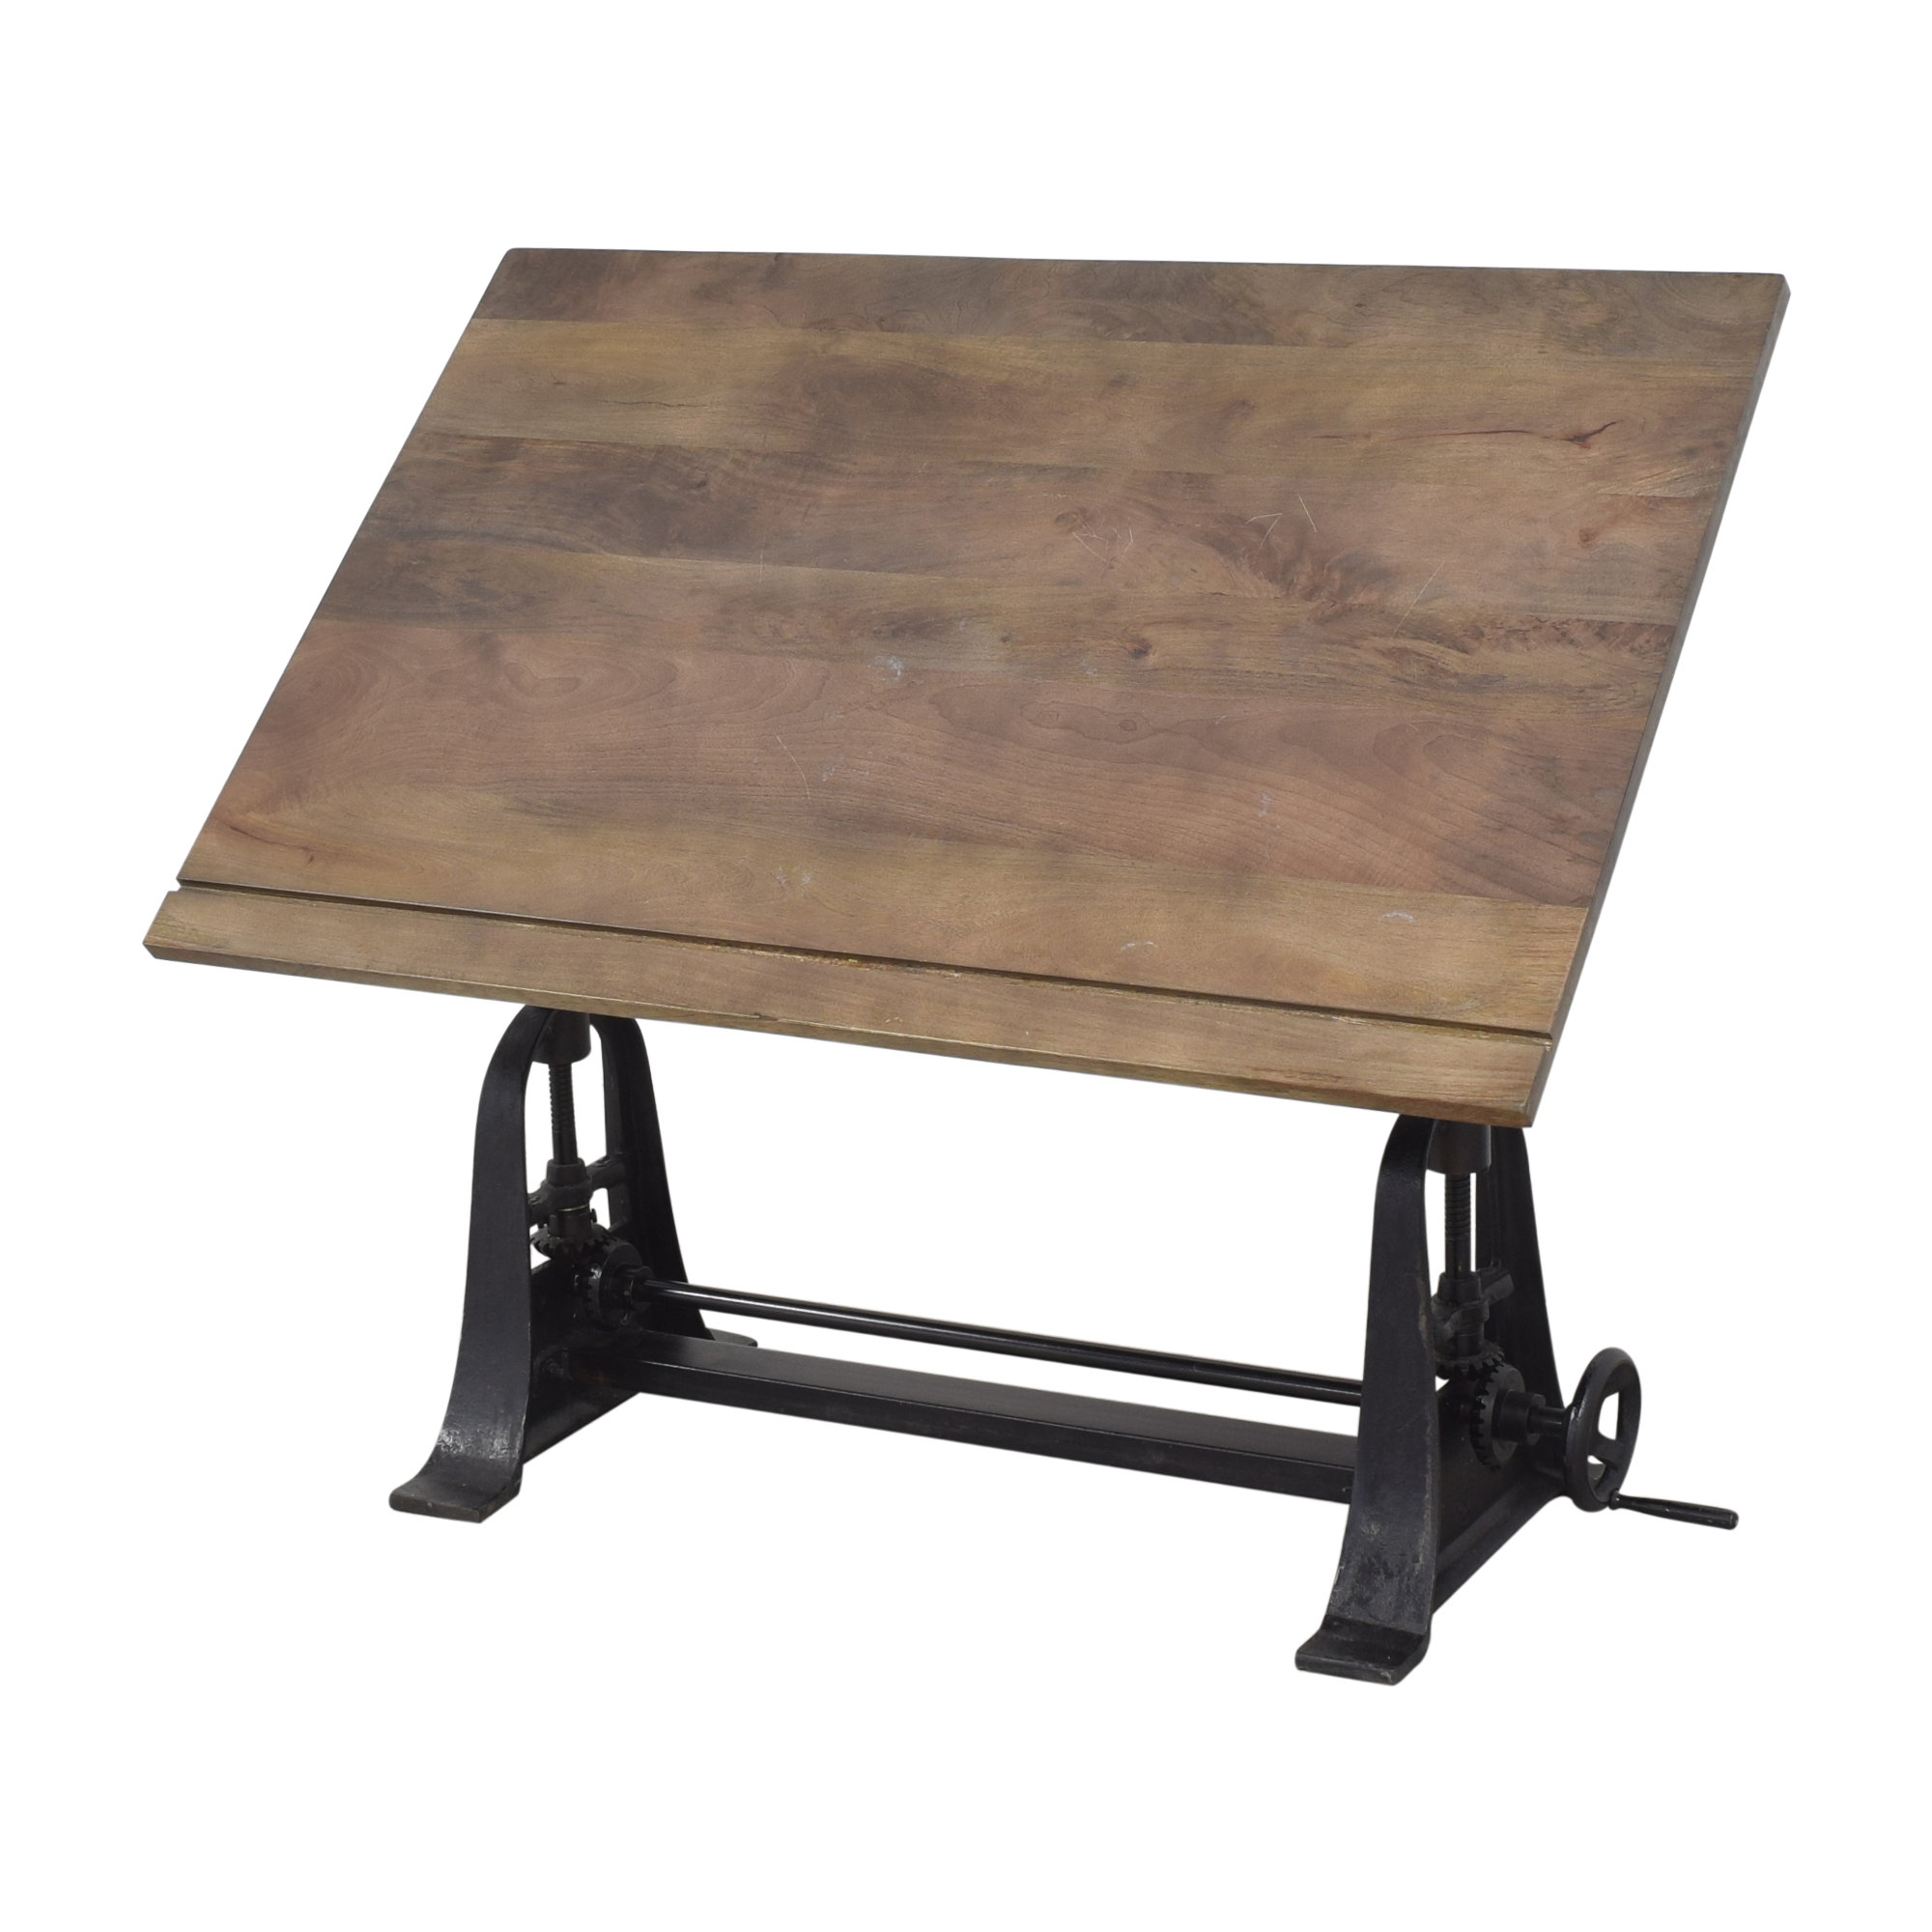 Restoration Hardware Restoration Hardware 1910 American Trestle Drafting Table dimensions